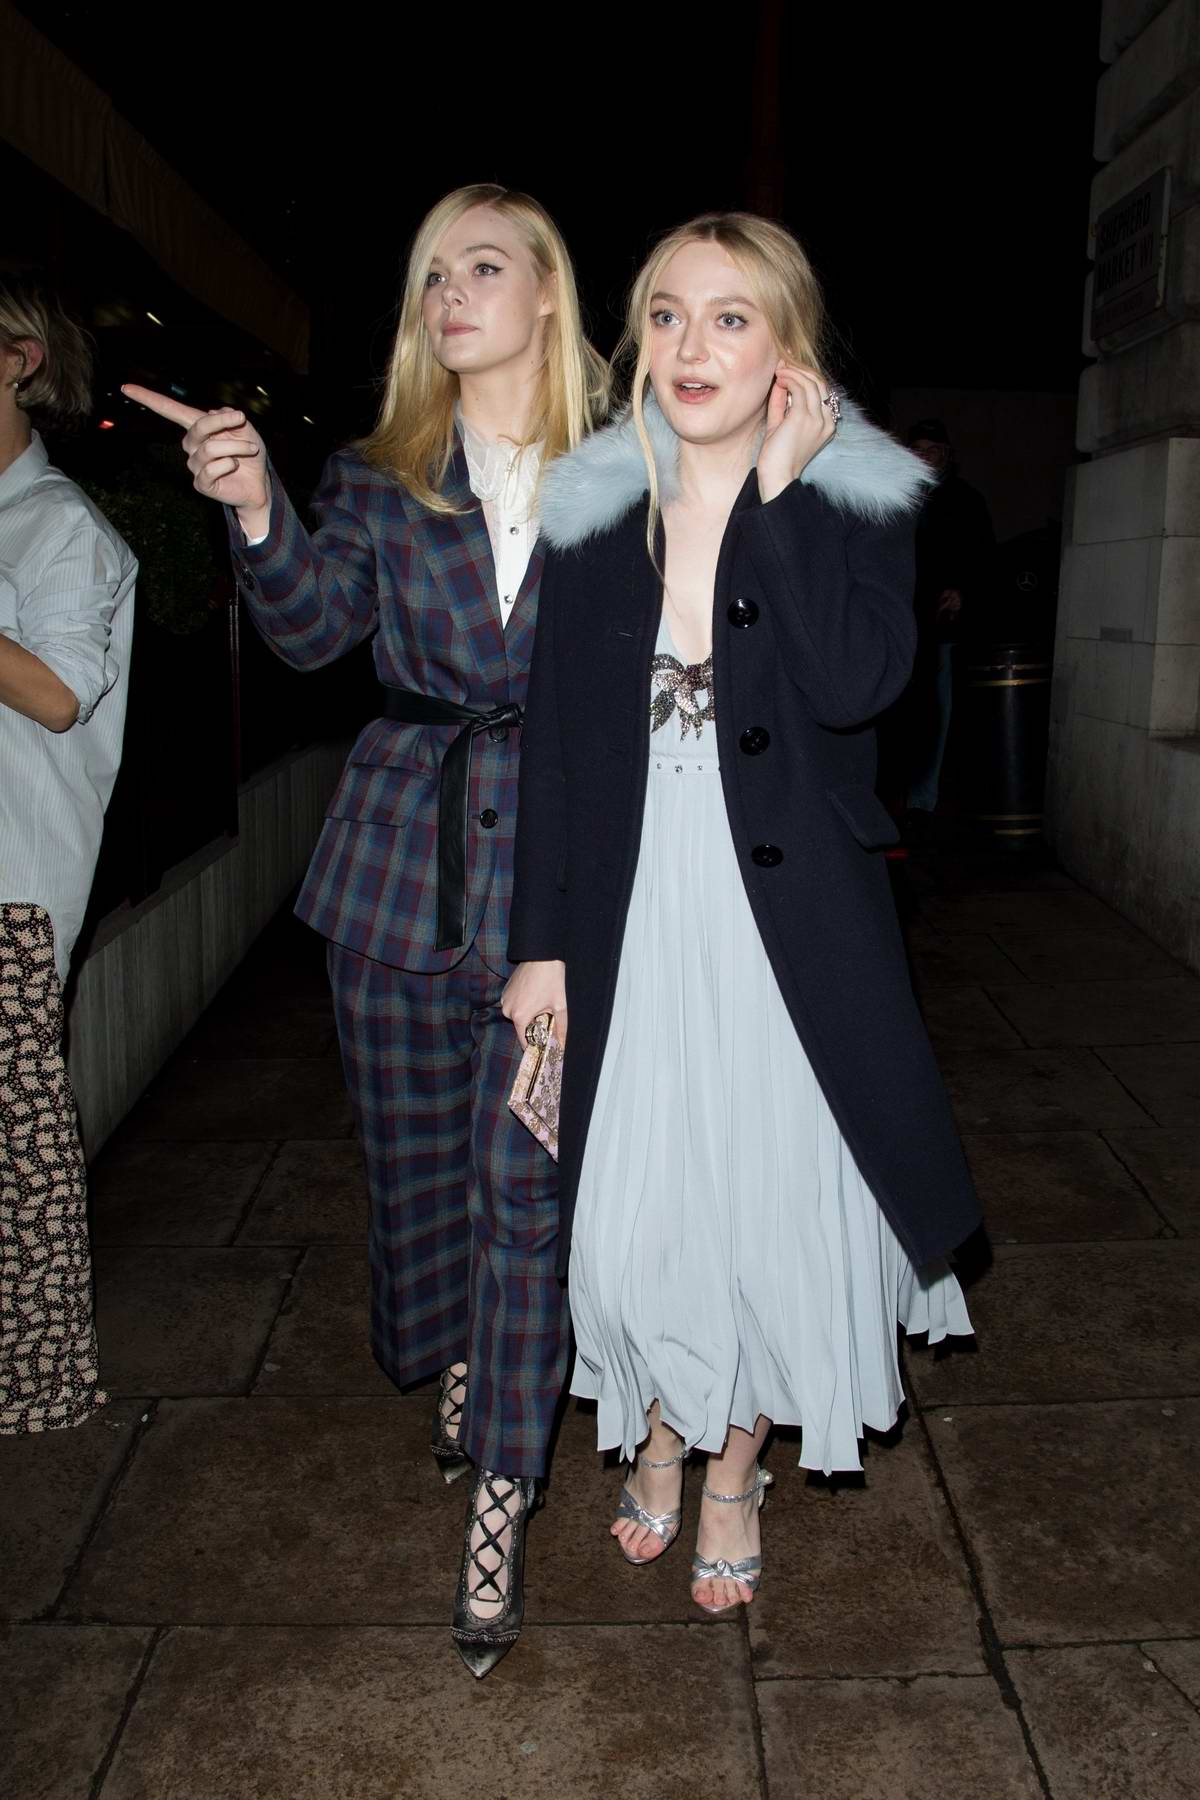 Elle Fanning and Dakota Fanning at Love and Miu Miu Women's Tales Party in London